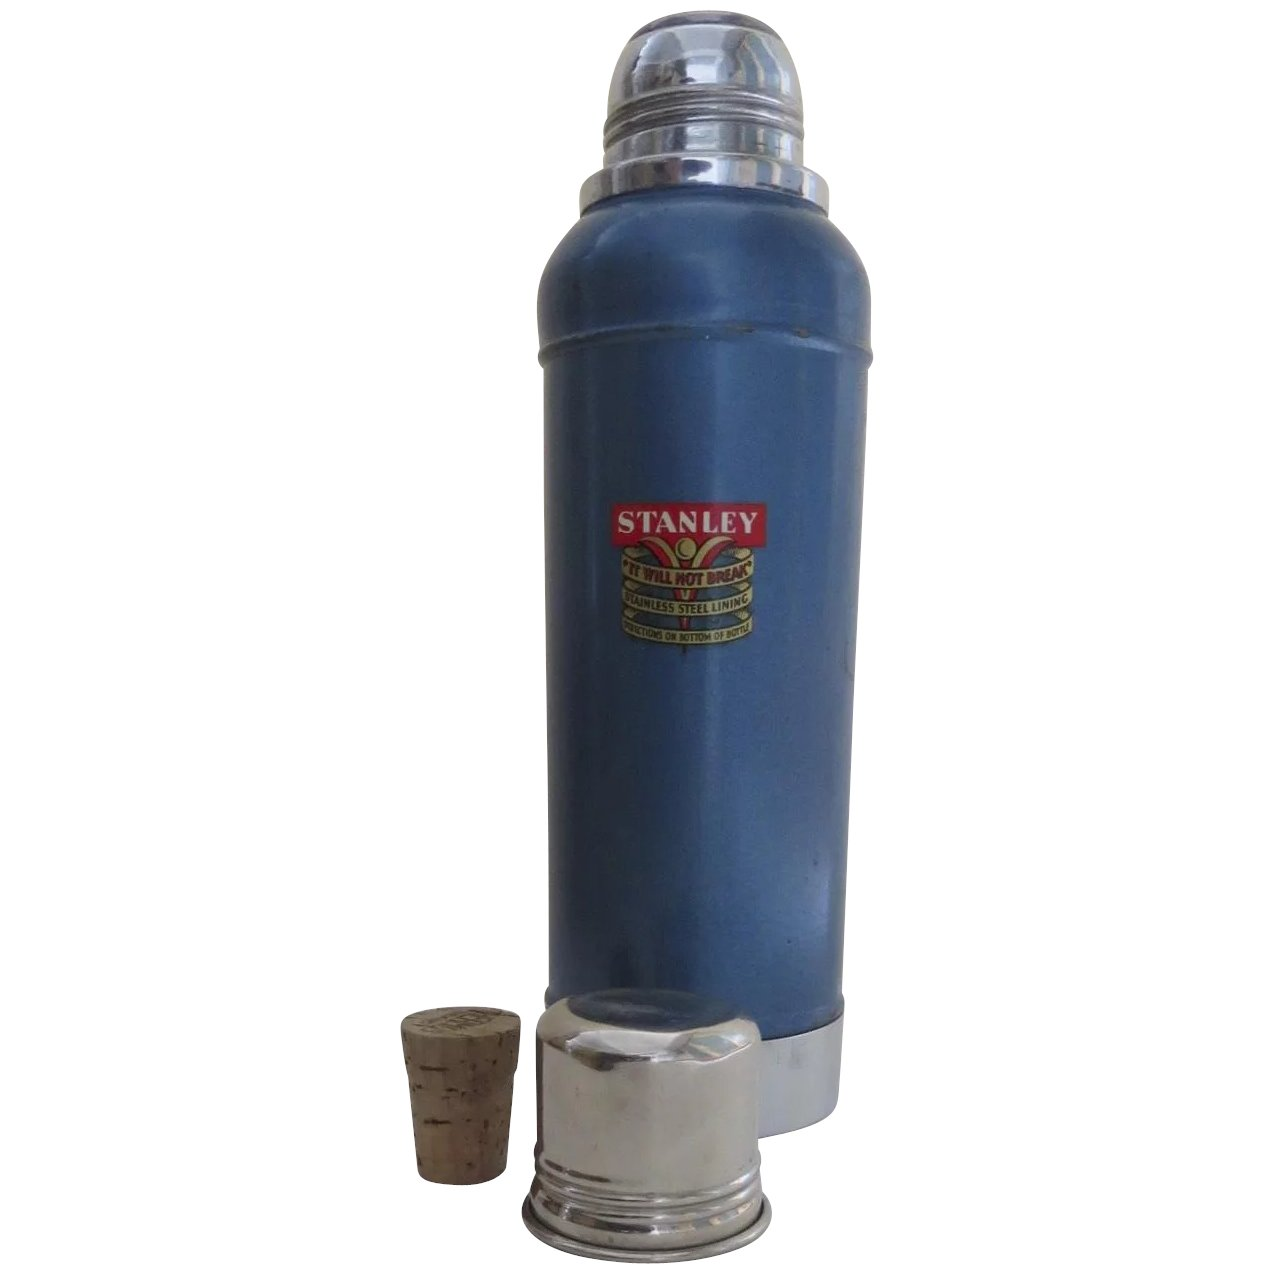 Vintage Stanley Super Vac Thermos and Cork Dated 3-1949 New Britton, Conn   Blue